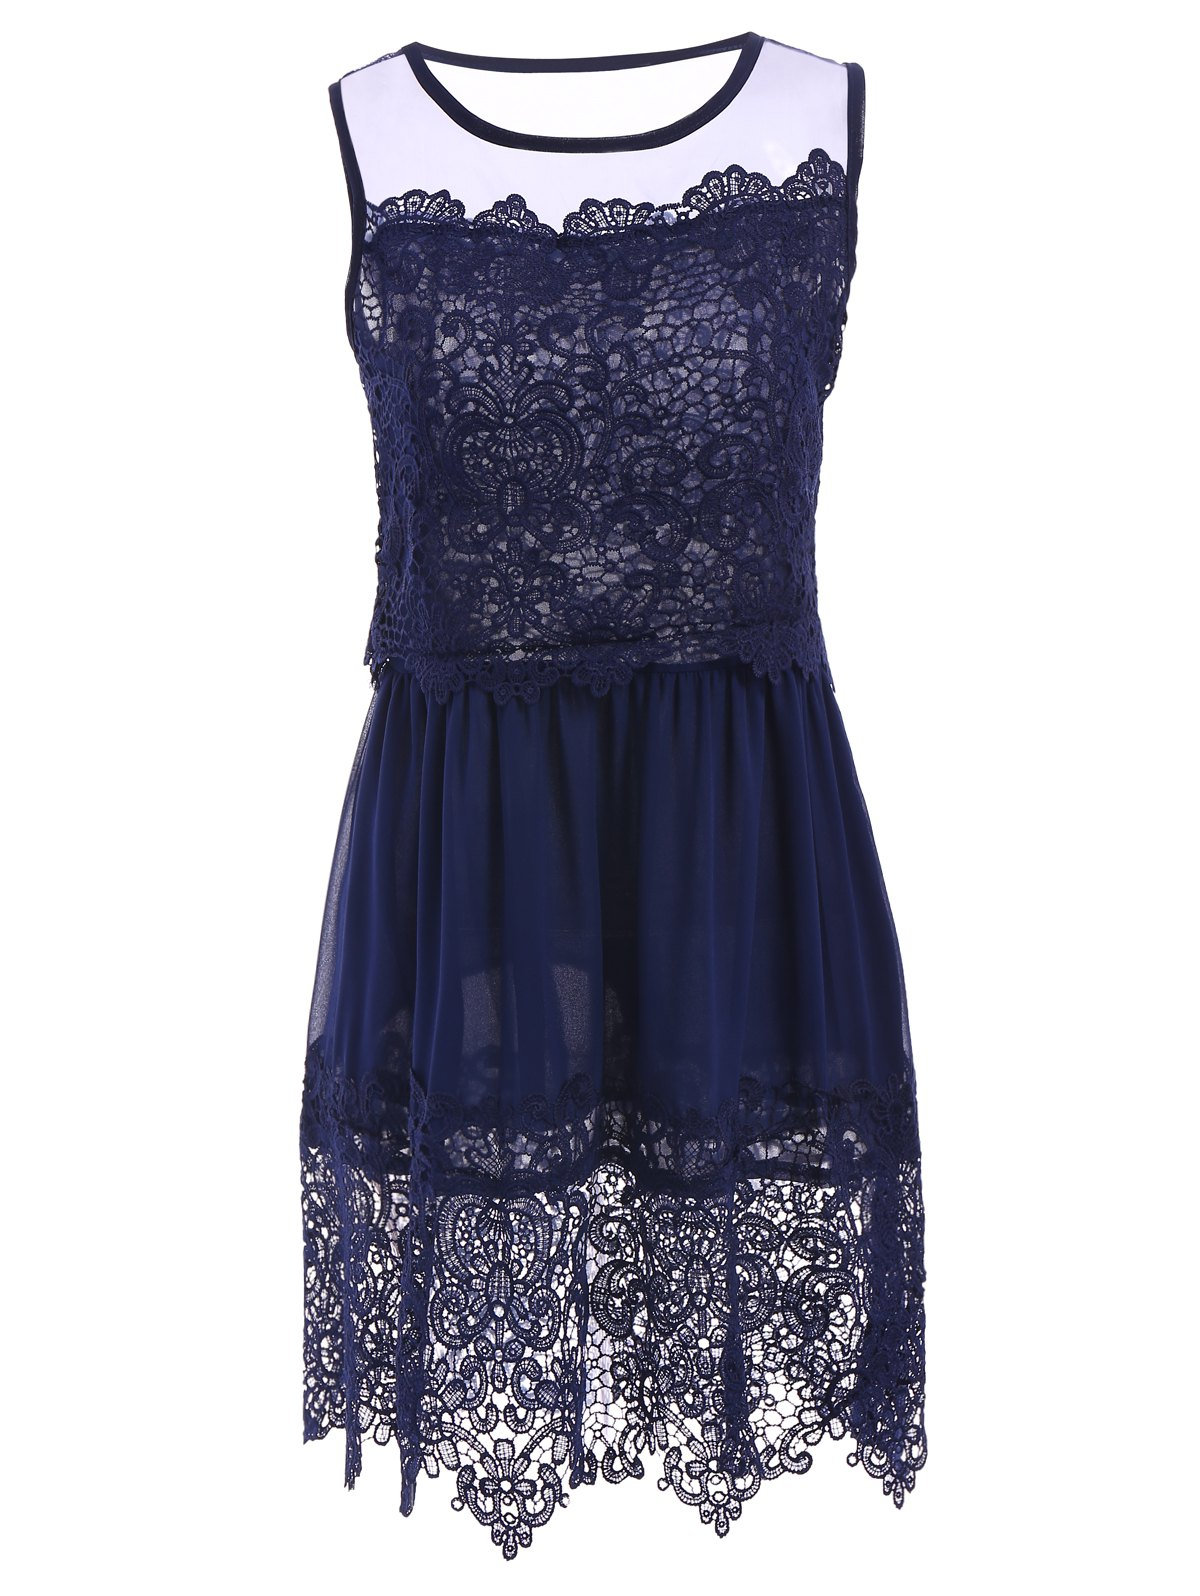 Sleeveless Jewel Neck Crochet Lace Dress For Women - DEEP BLUE S